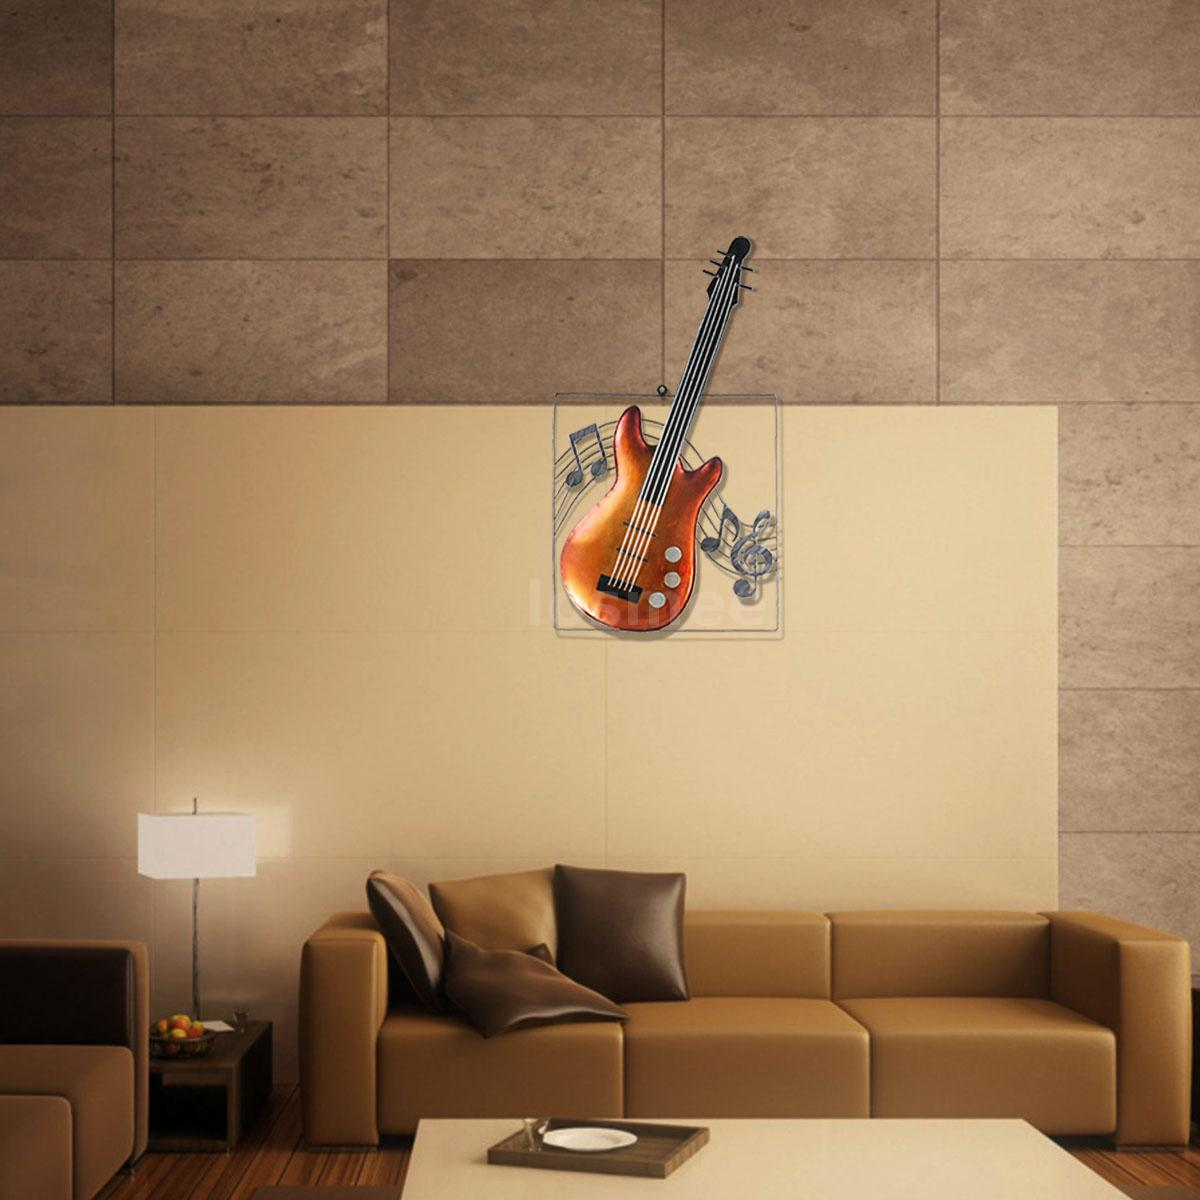 Tooarts Guitar Hanging Ornament Home Decor Wall Hangings Decor Music ...